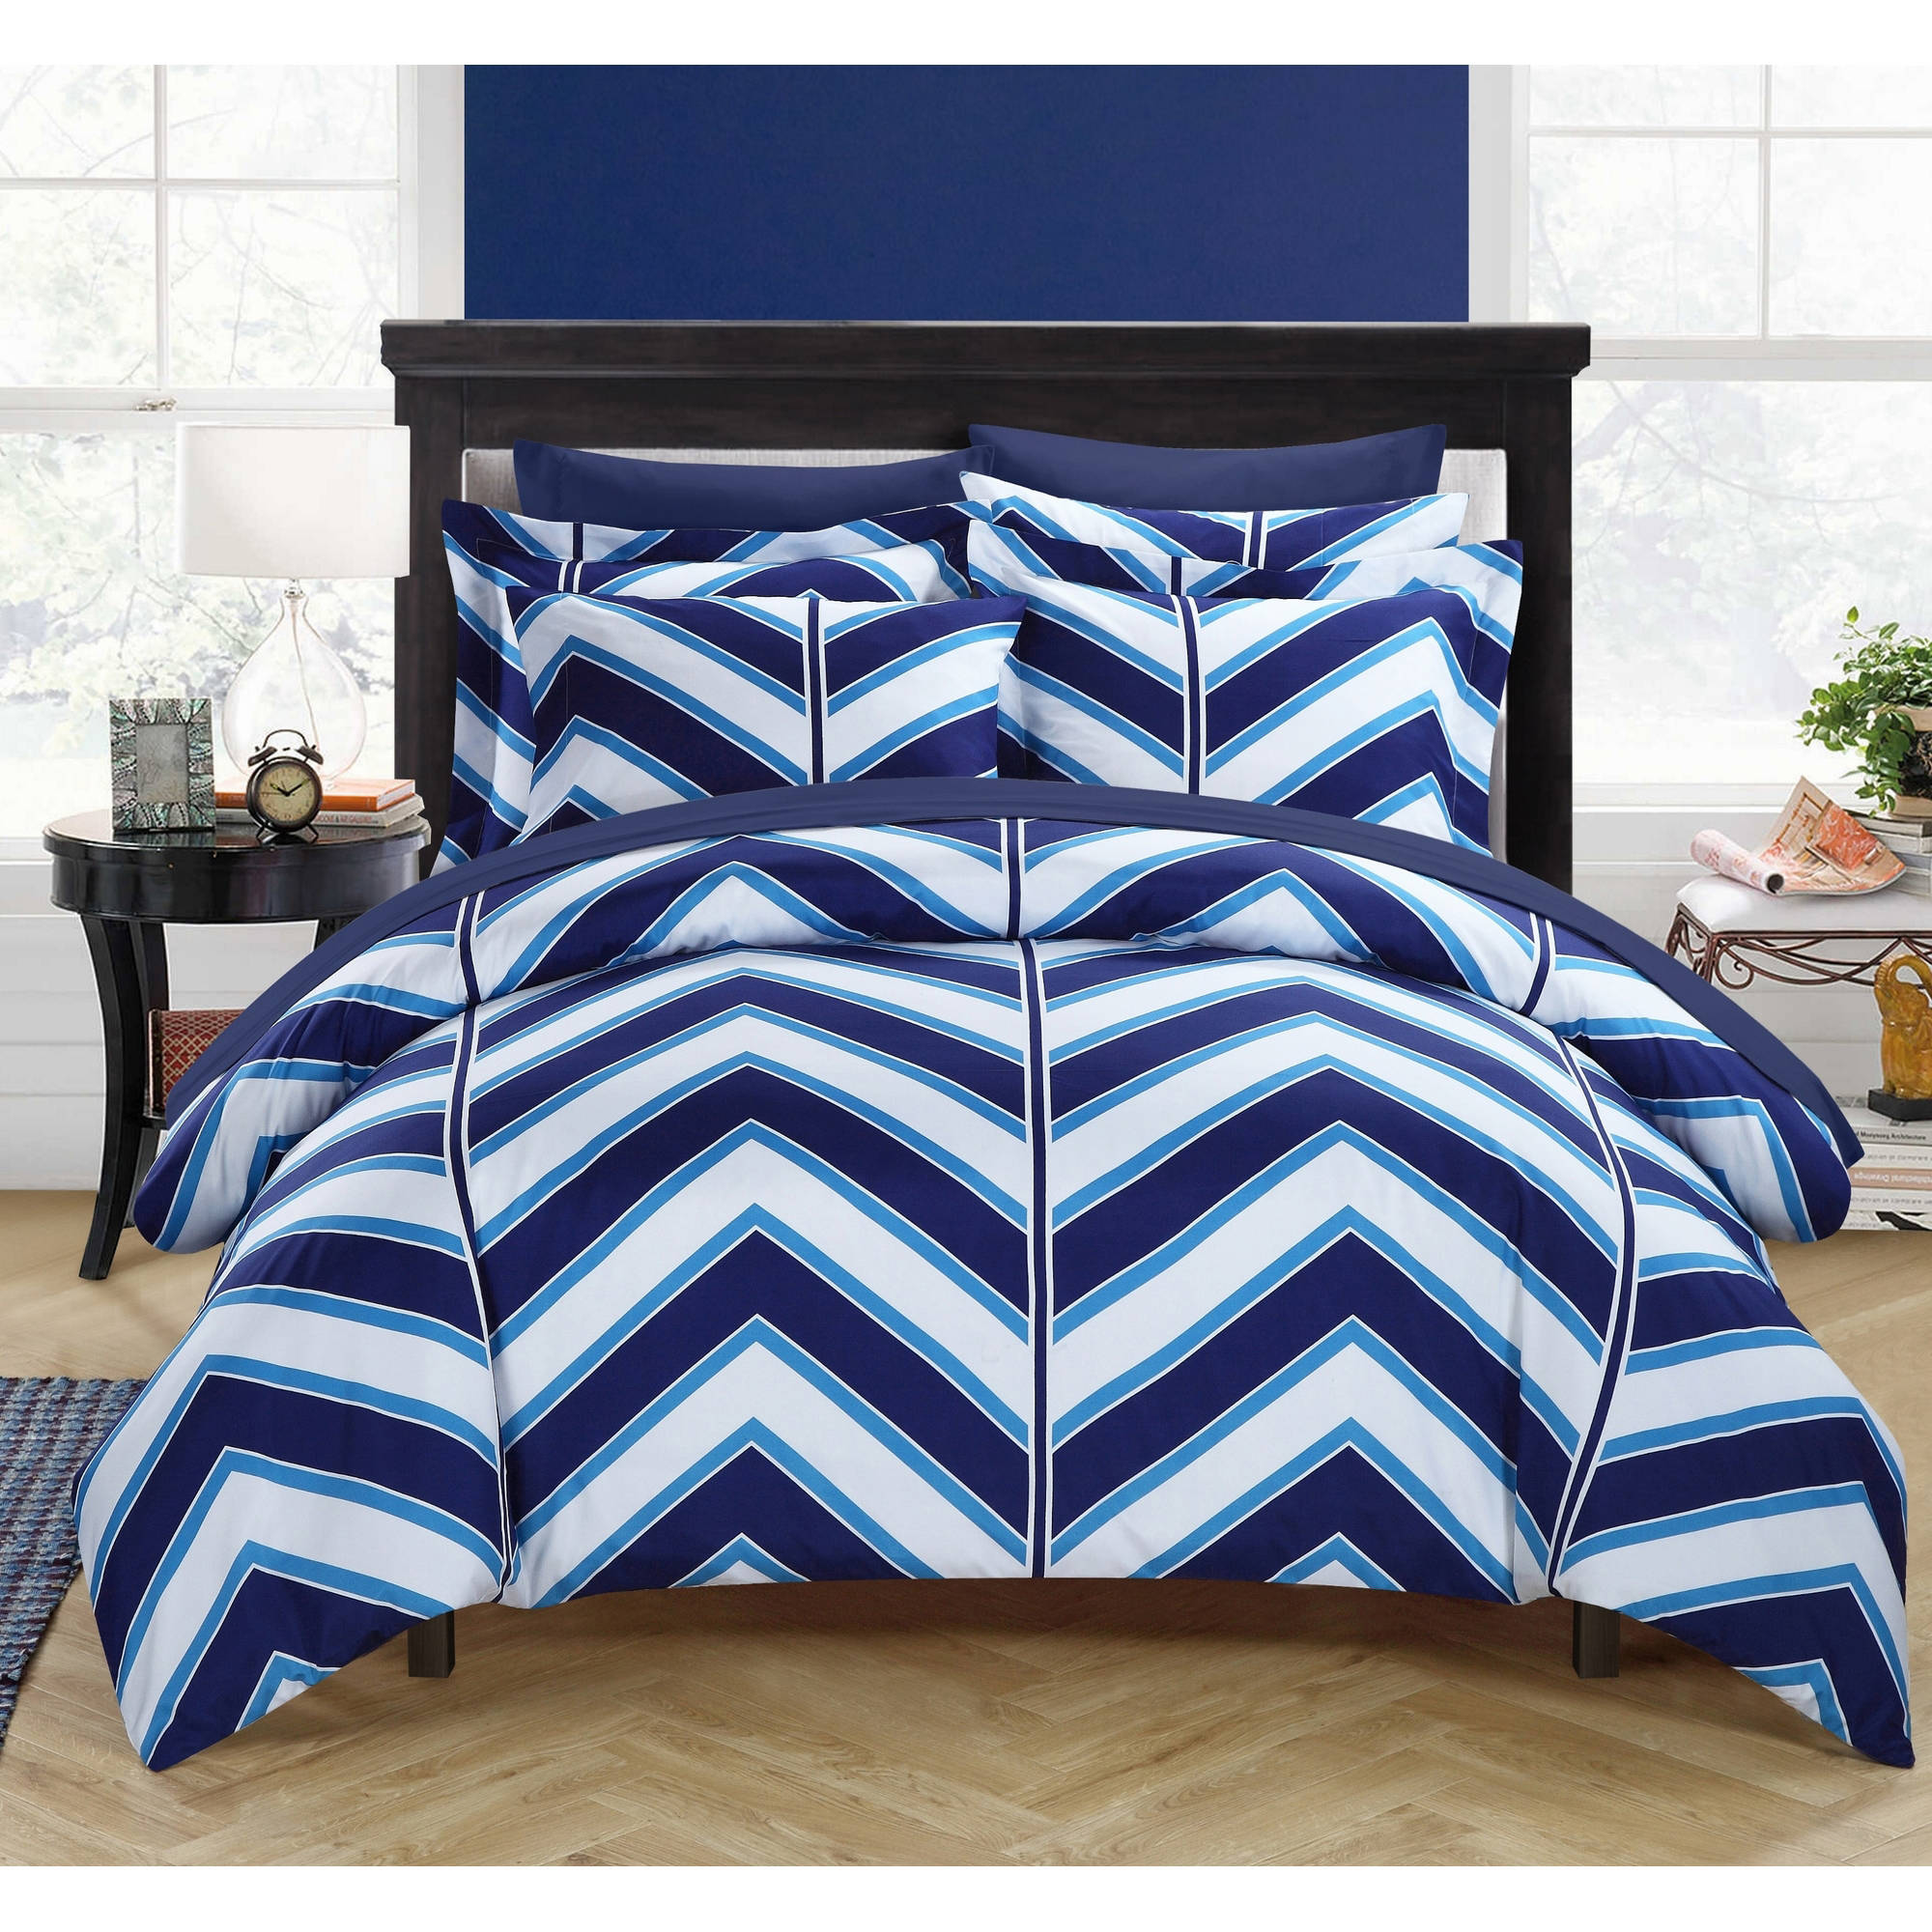 Dallas 2-Piece Bedding Duvet Cover Set